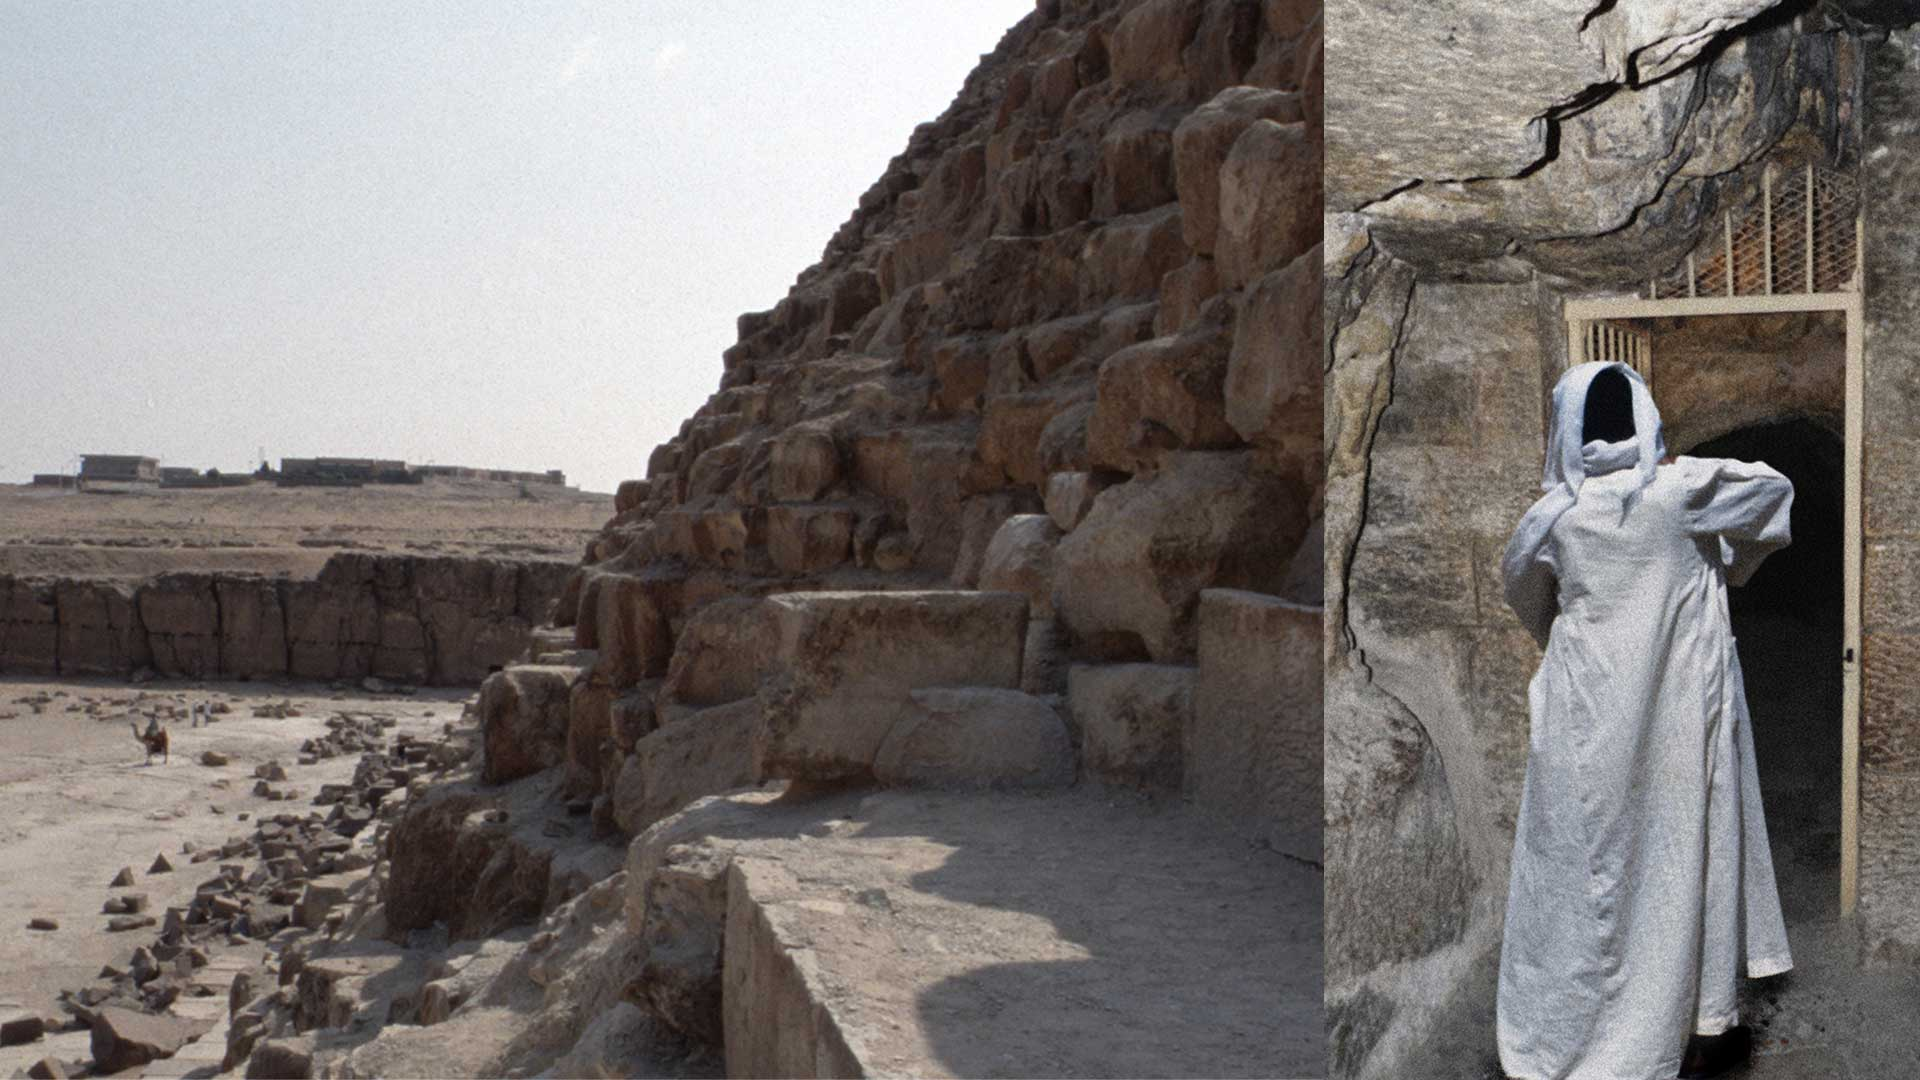 A Guardian Includes Spörri in the Pyramid of Cheops (1988)